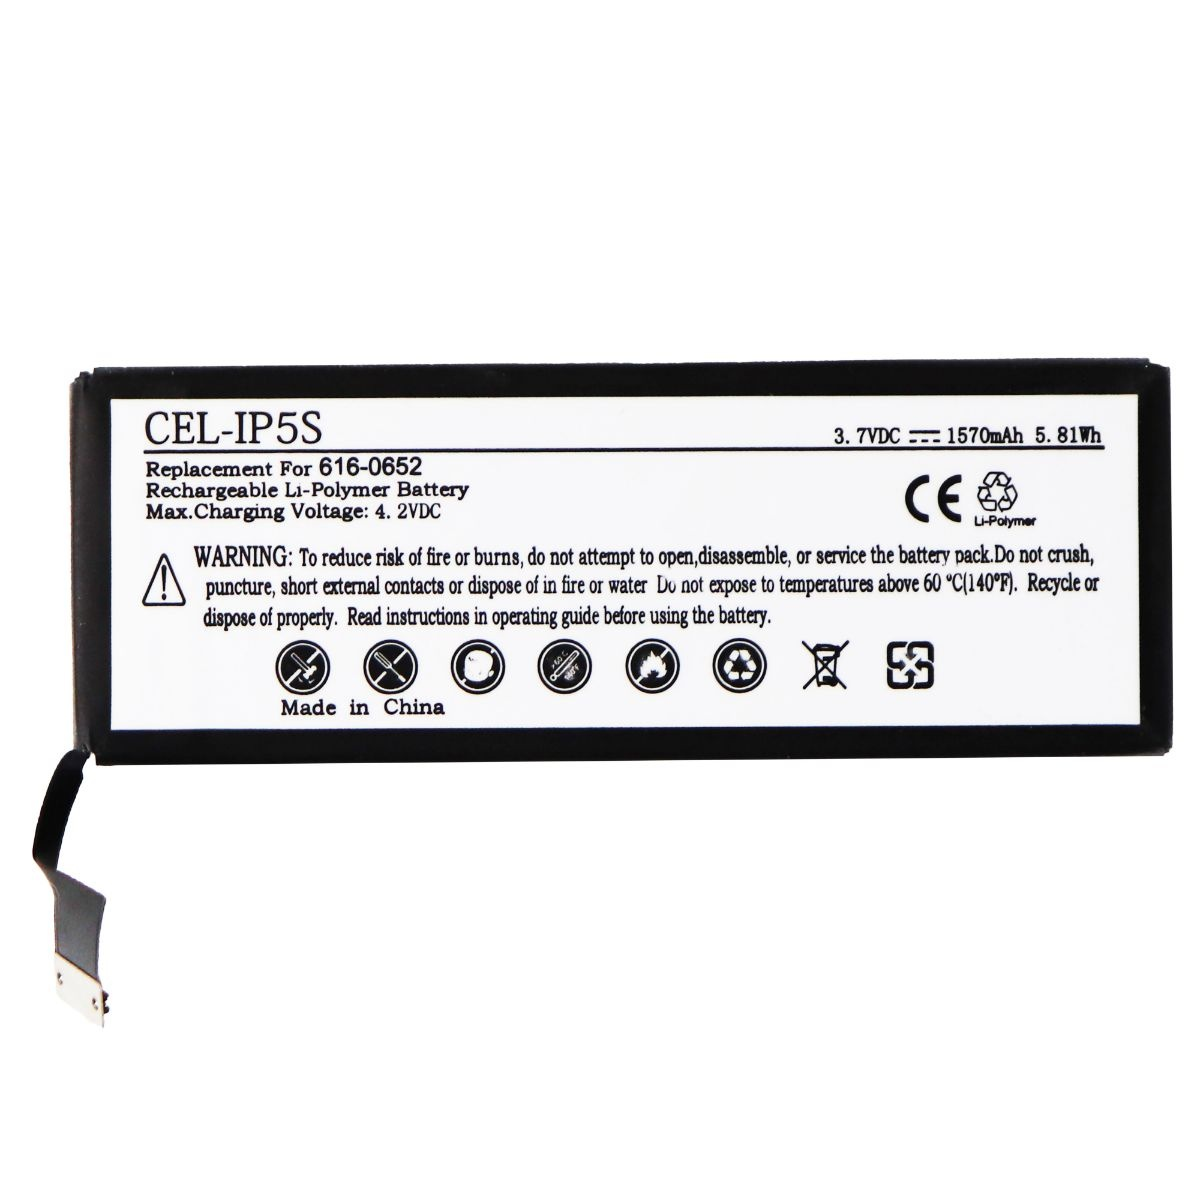 UltraLast Rechargeable Battery for Apple iPhone 5S - CEL-IP5S